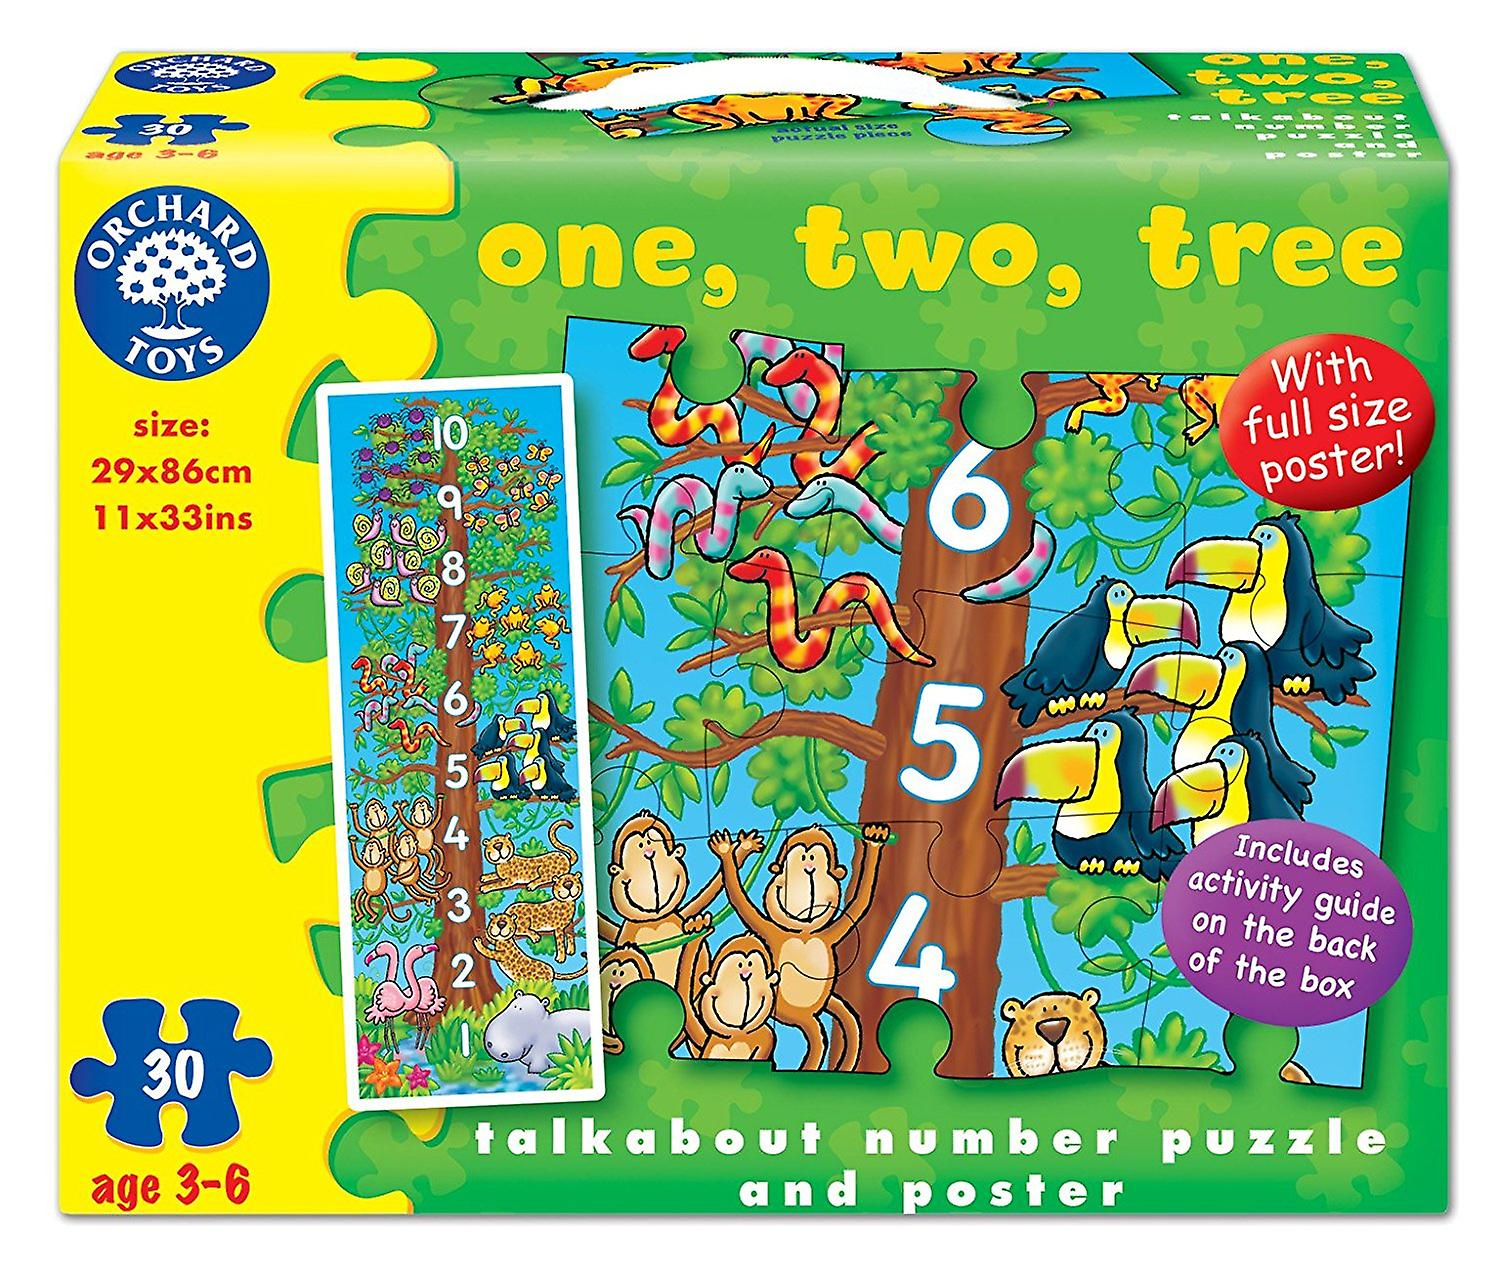 Orchard One, Two, Tree Puzzle